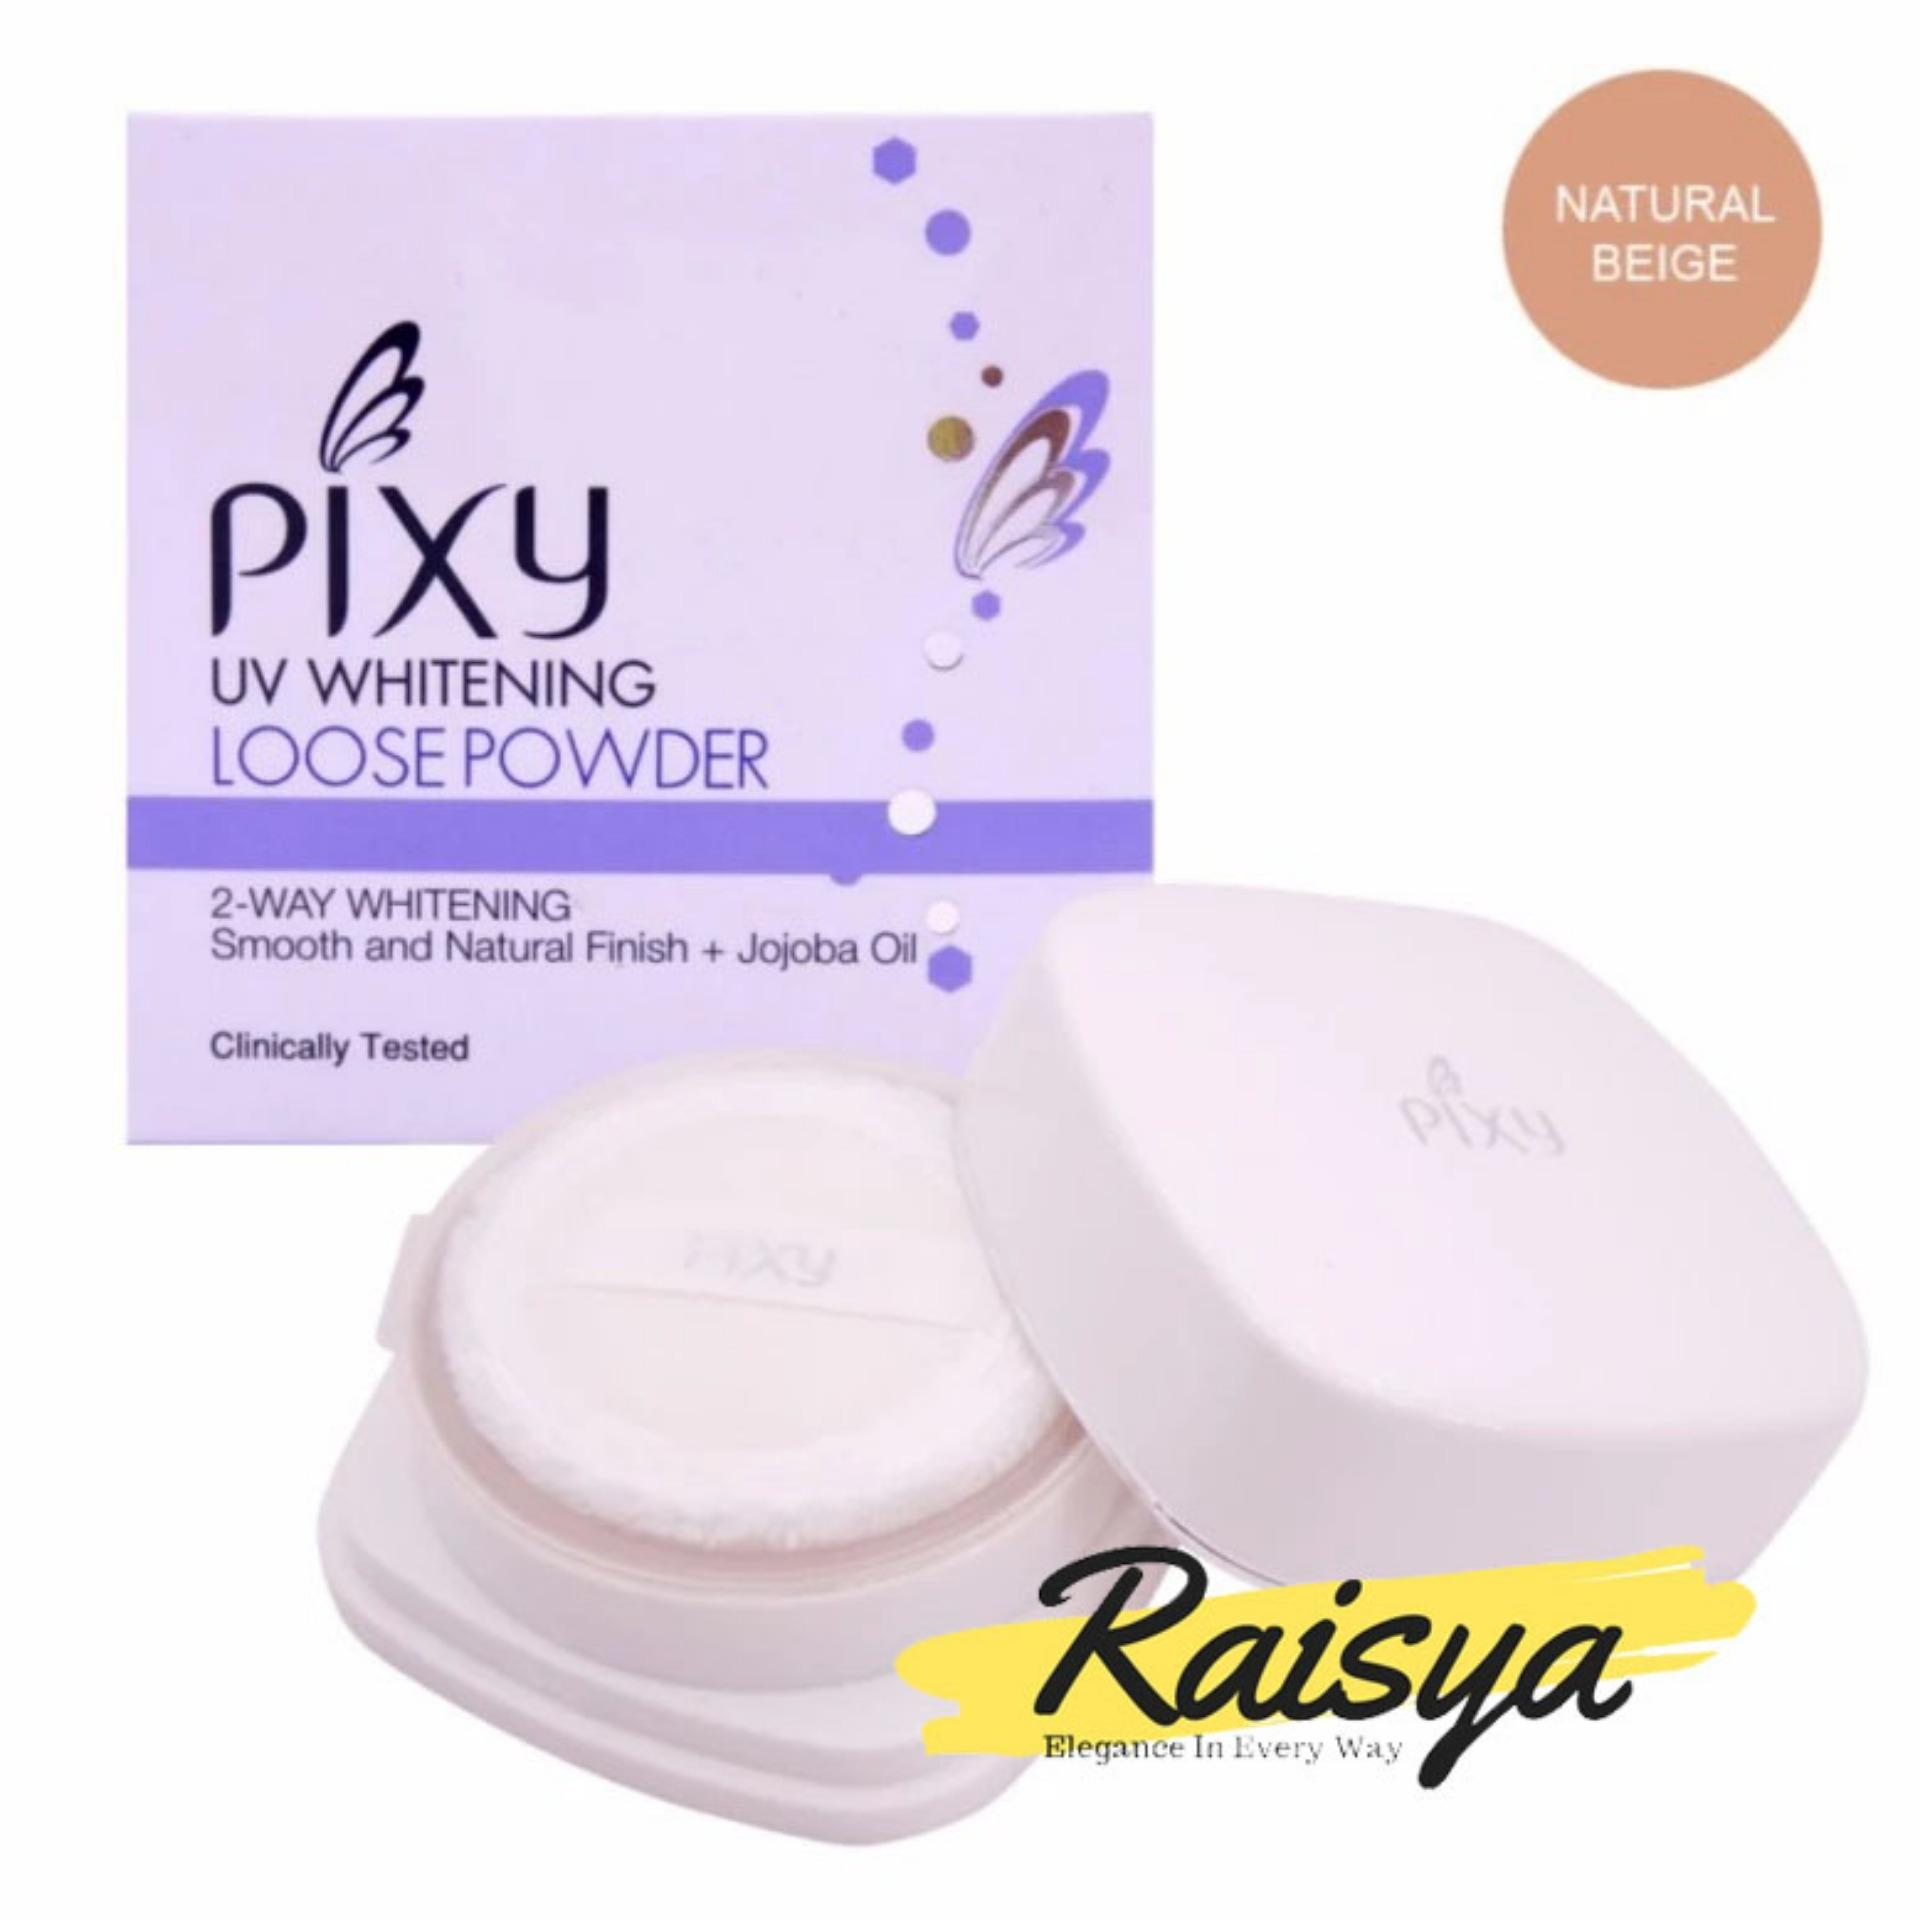 Pixy Loose Powder Natural Beige - Original